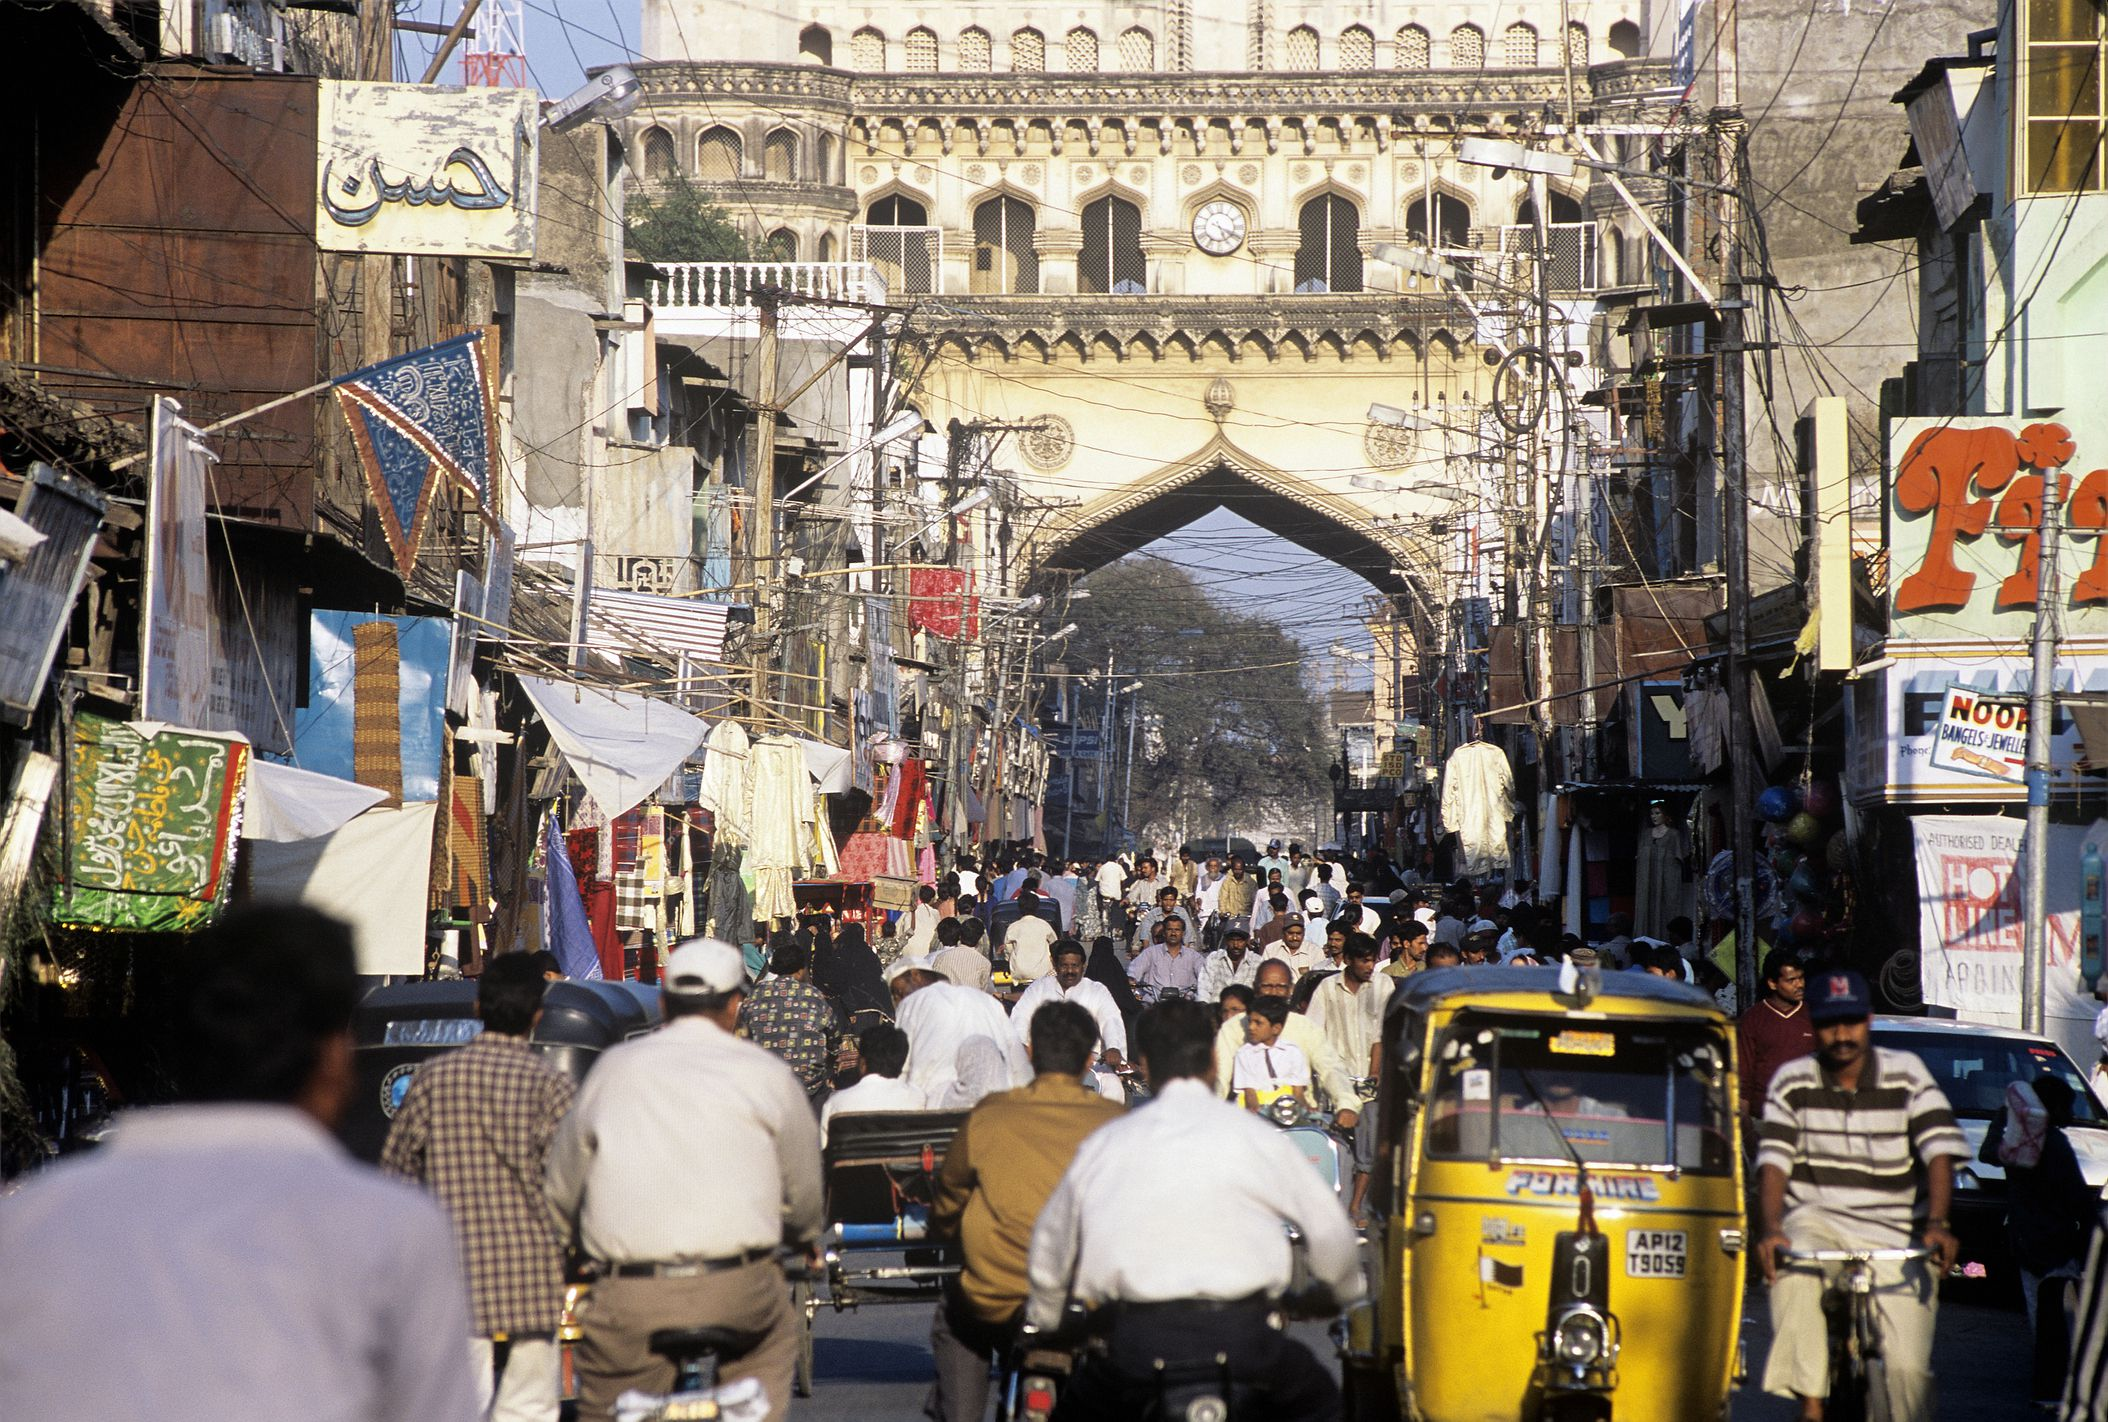 12 Most Crowded Places in India that Will Astonish You